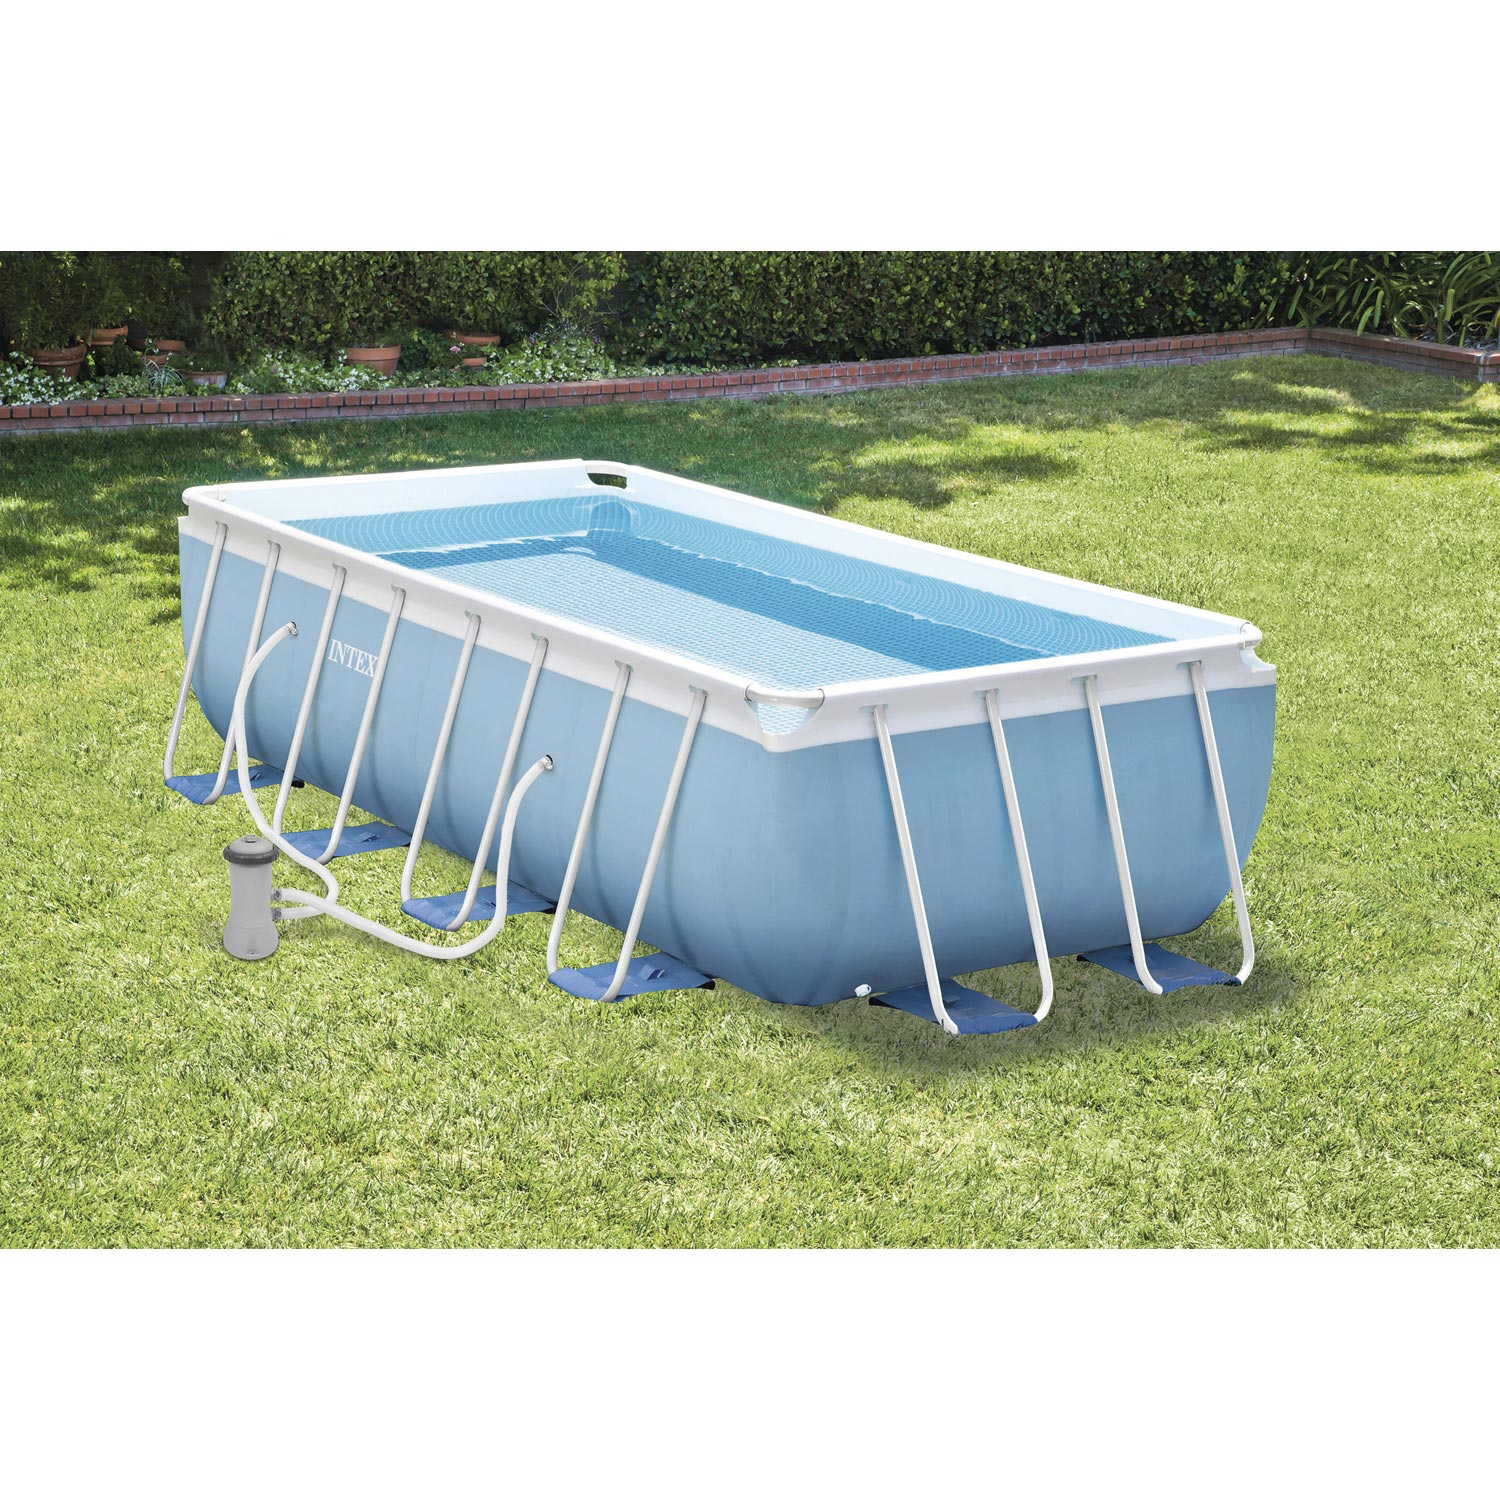 Piscine hors sol autoportante tubulaire prism frame intex for Piscine hors sol reglementation